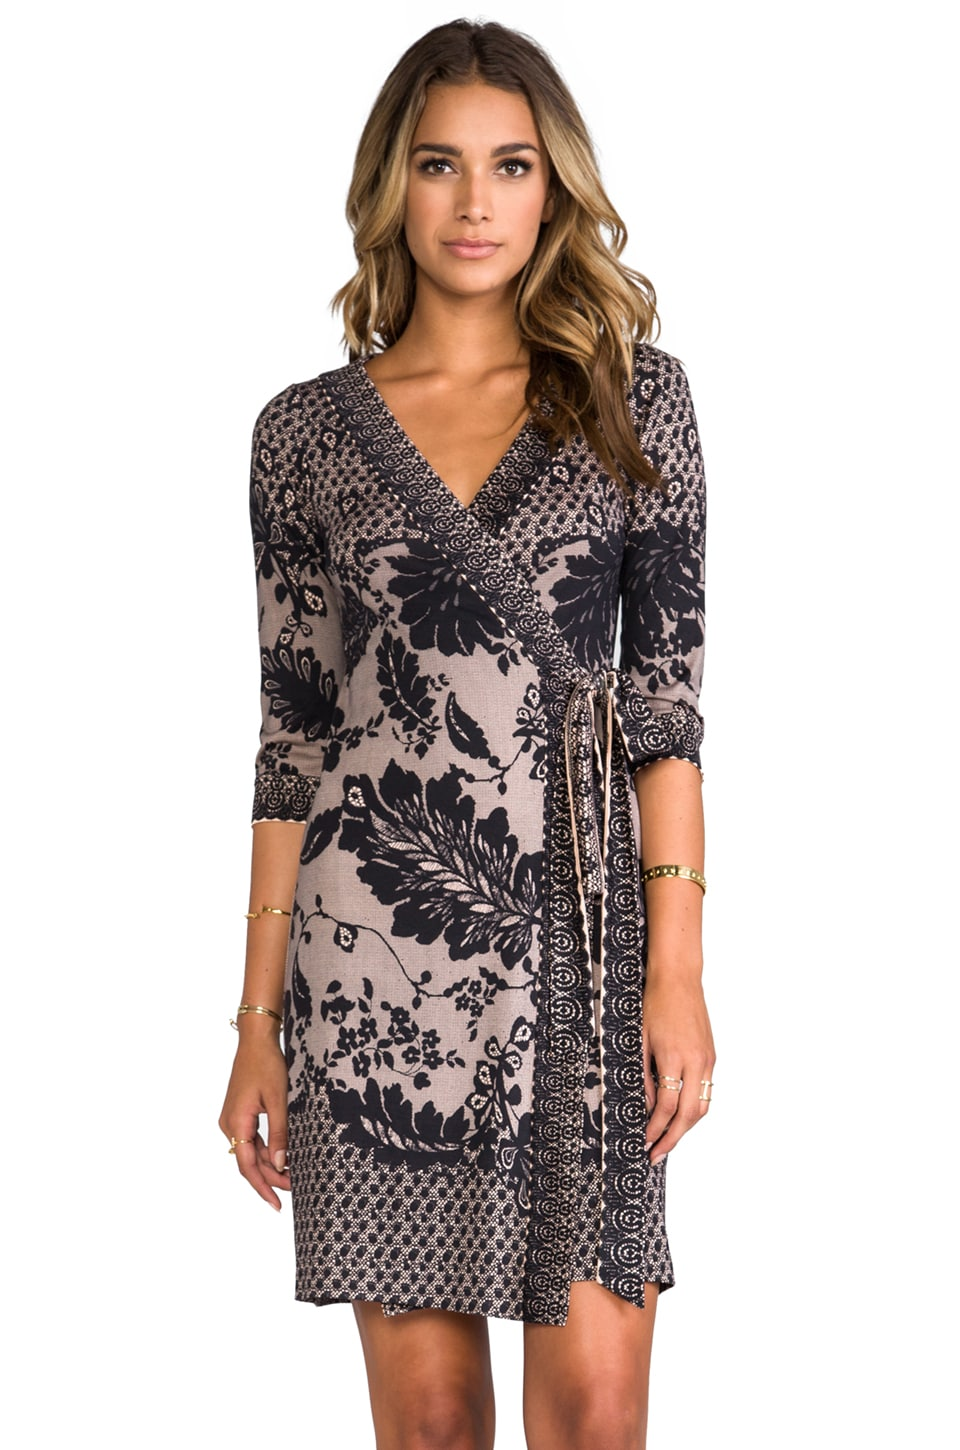 Diane von Furstenberg Inari Dress in Black Flutter Lace